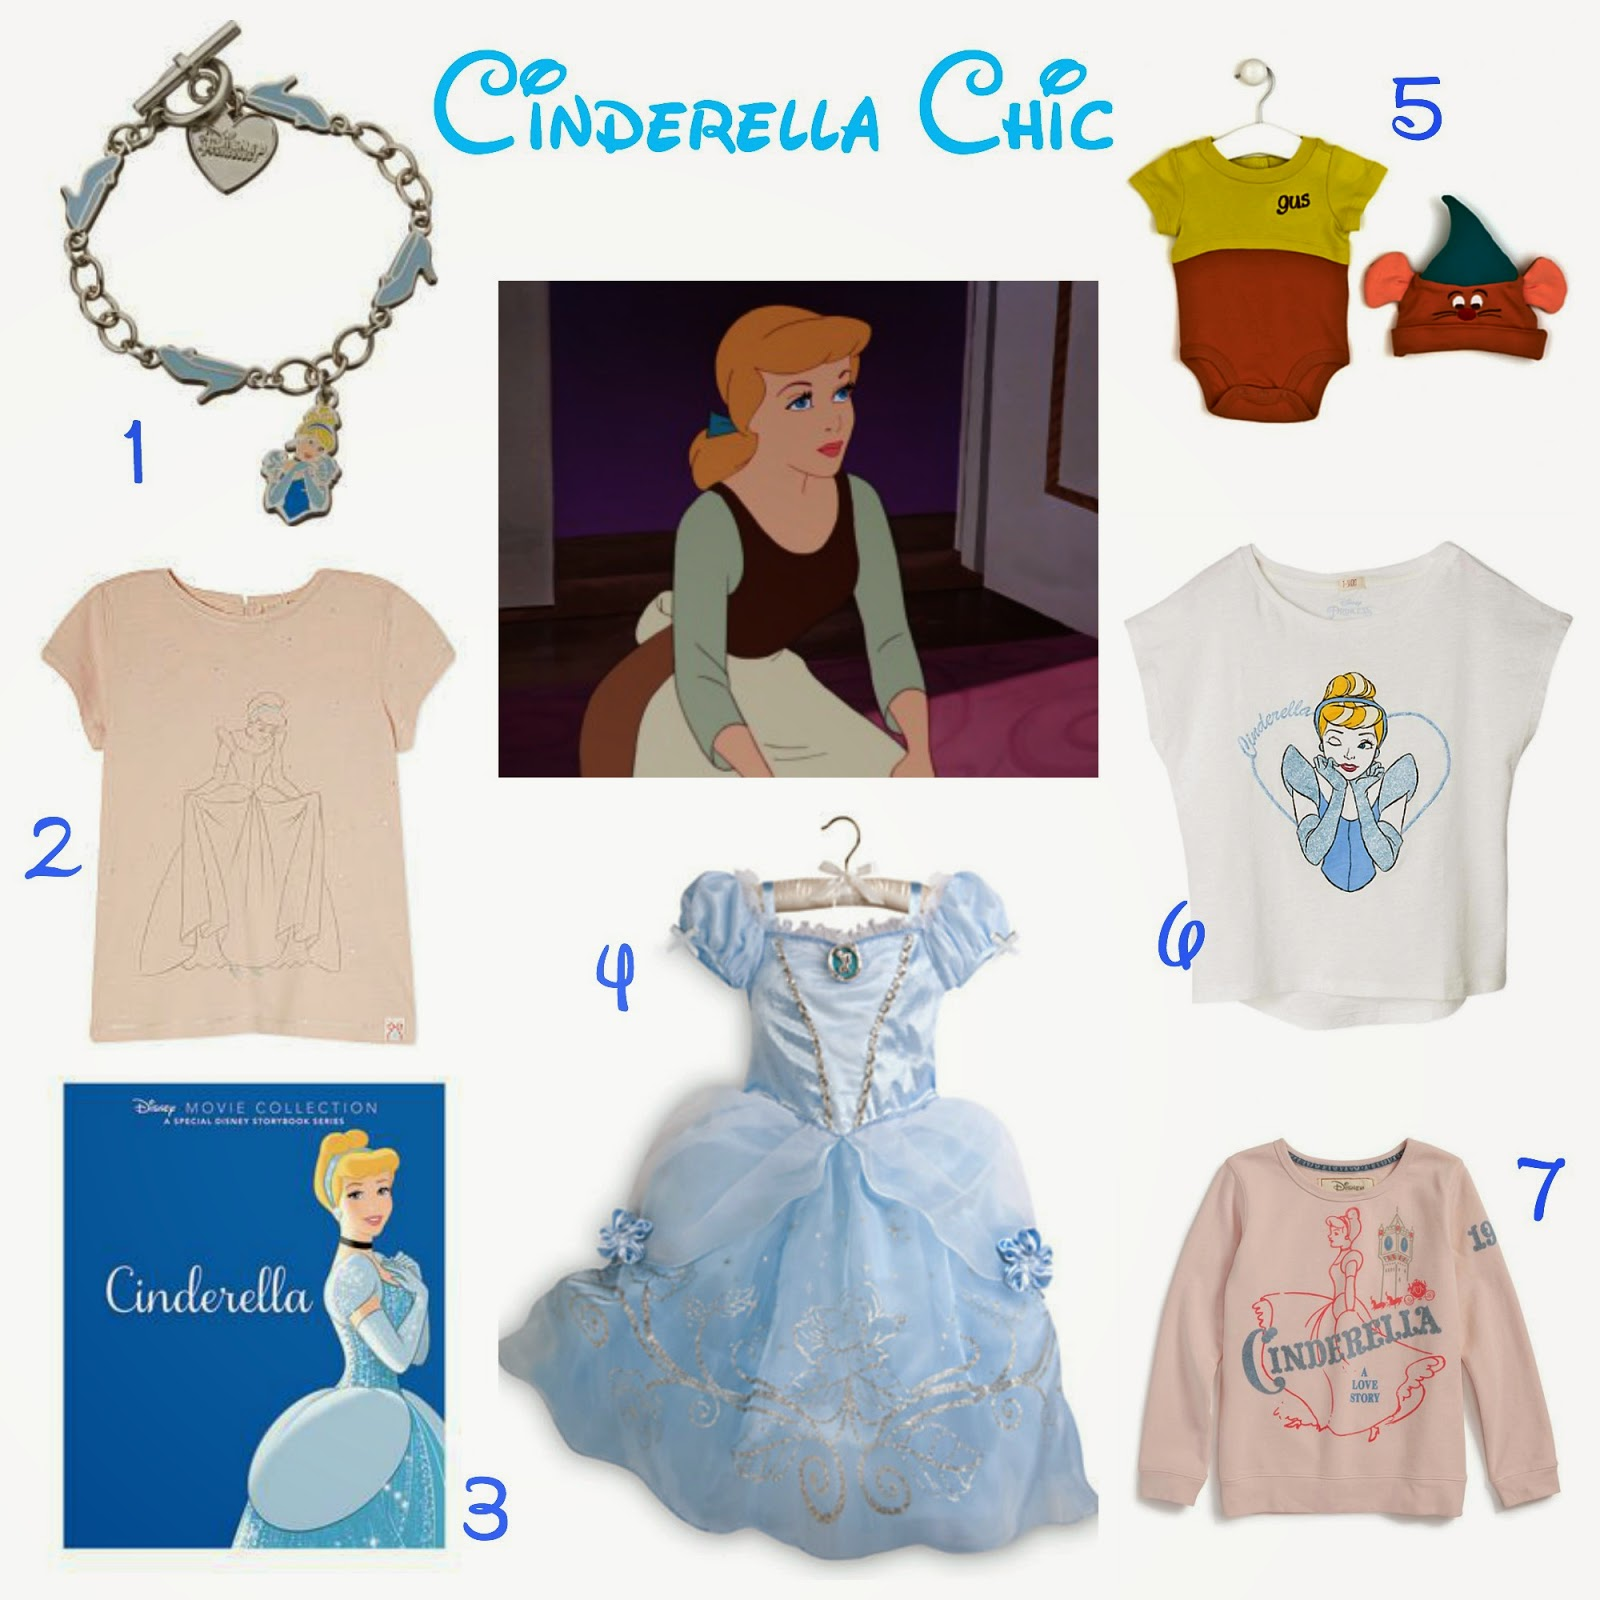 mamasVIB | V. I. BUYS: Welcome to #mamamondays… Pipsticks, Colouring books for adults and Cinderella Chic | cinderella | disney store | disney | cinderelly | film | live action movie | coragae and kind | mango | cinderlla chic | cinderlal fashion | disney store | doll | disney store | john lewis | mango | class movie | princess | cinderella | 1950 movie | classic book | kids fashion | clothe s| style | dishy clothing | cool disney buys | toddler fashion | disney dolls | cinerella bracelet | cinderlla tees | logo tee | sweatshirt with disney print | mamasVIb